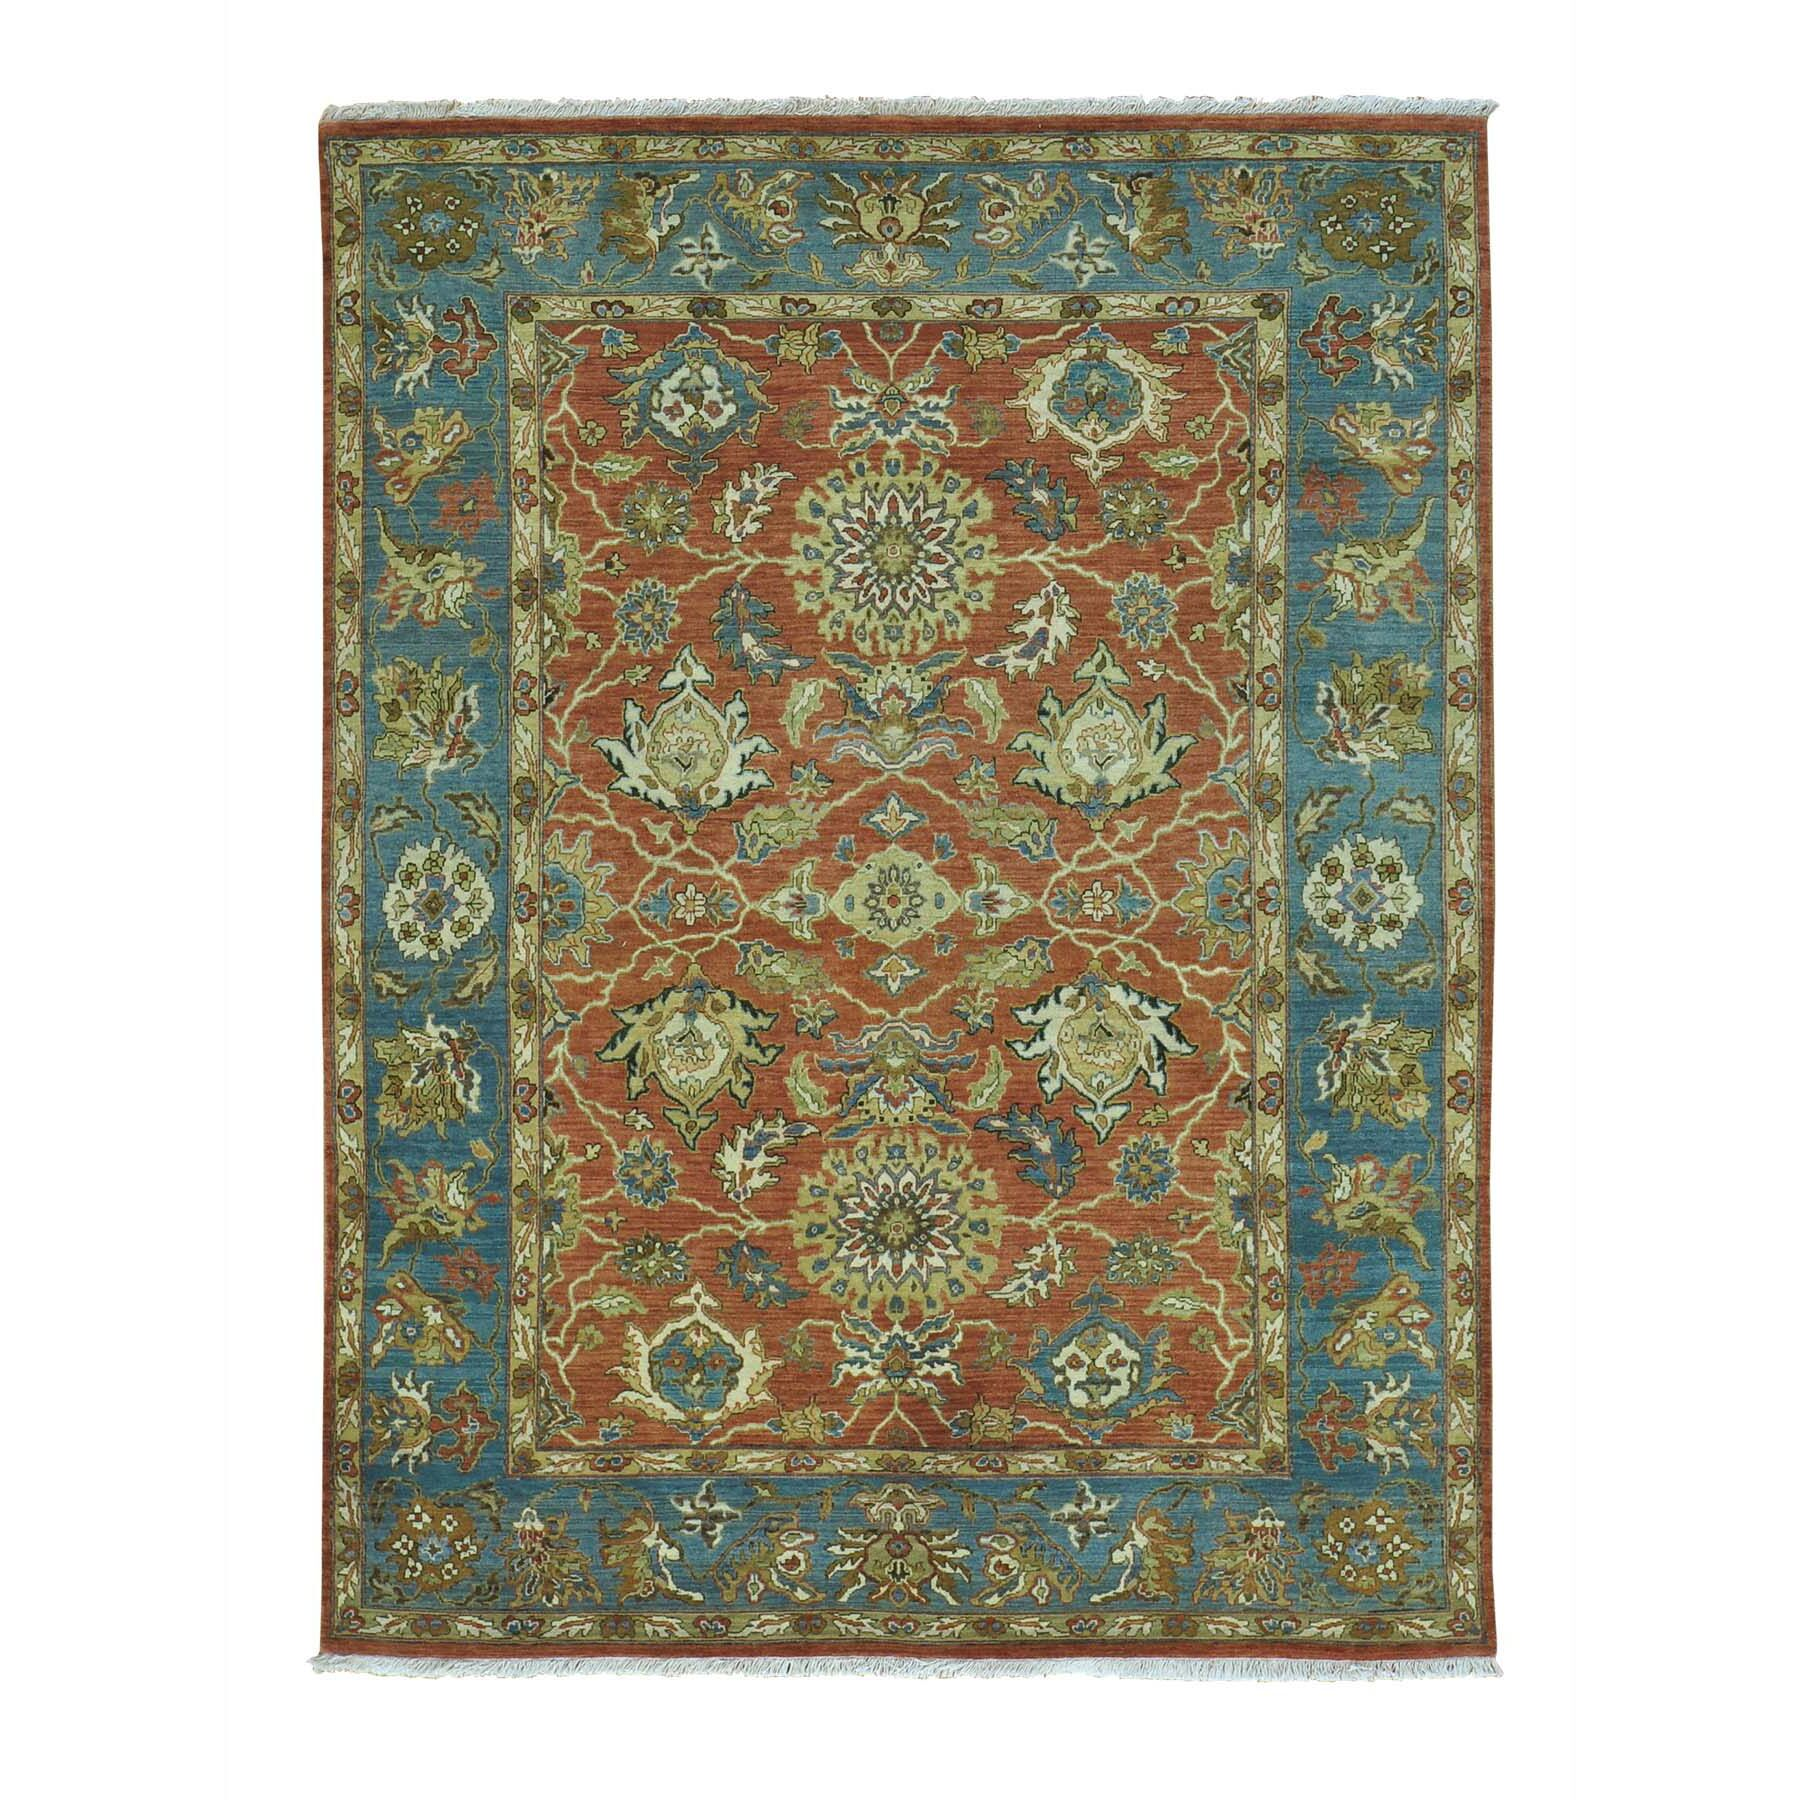 One-of-a-Kind Sultanabad Hand-Knotted Red Area Rug Rug Size: Rectangle 4'10